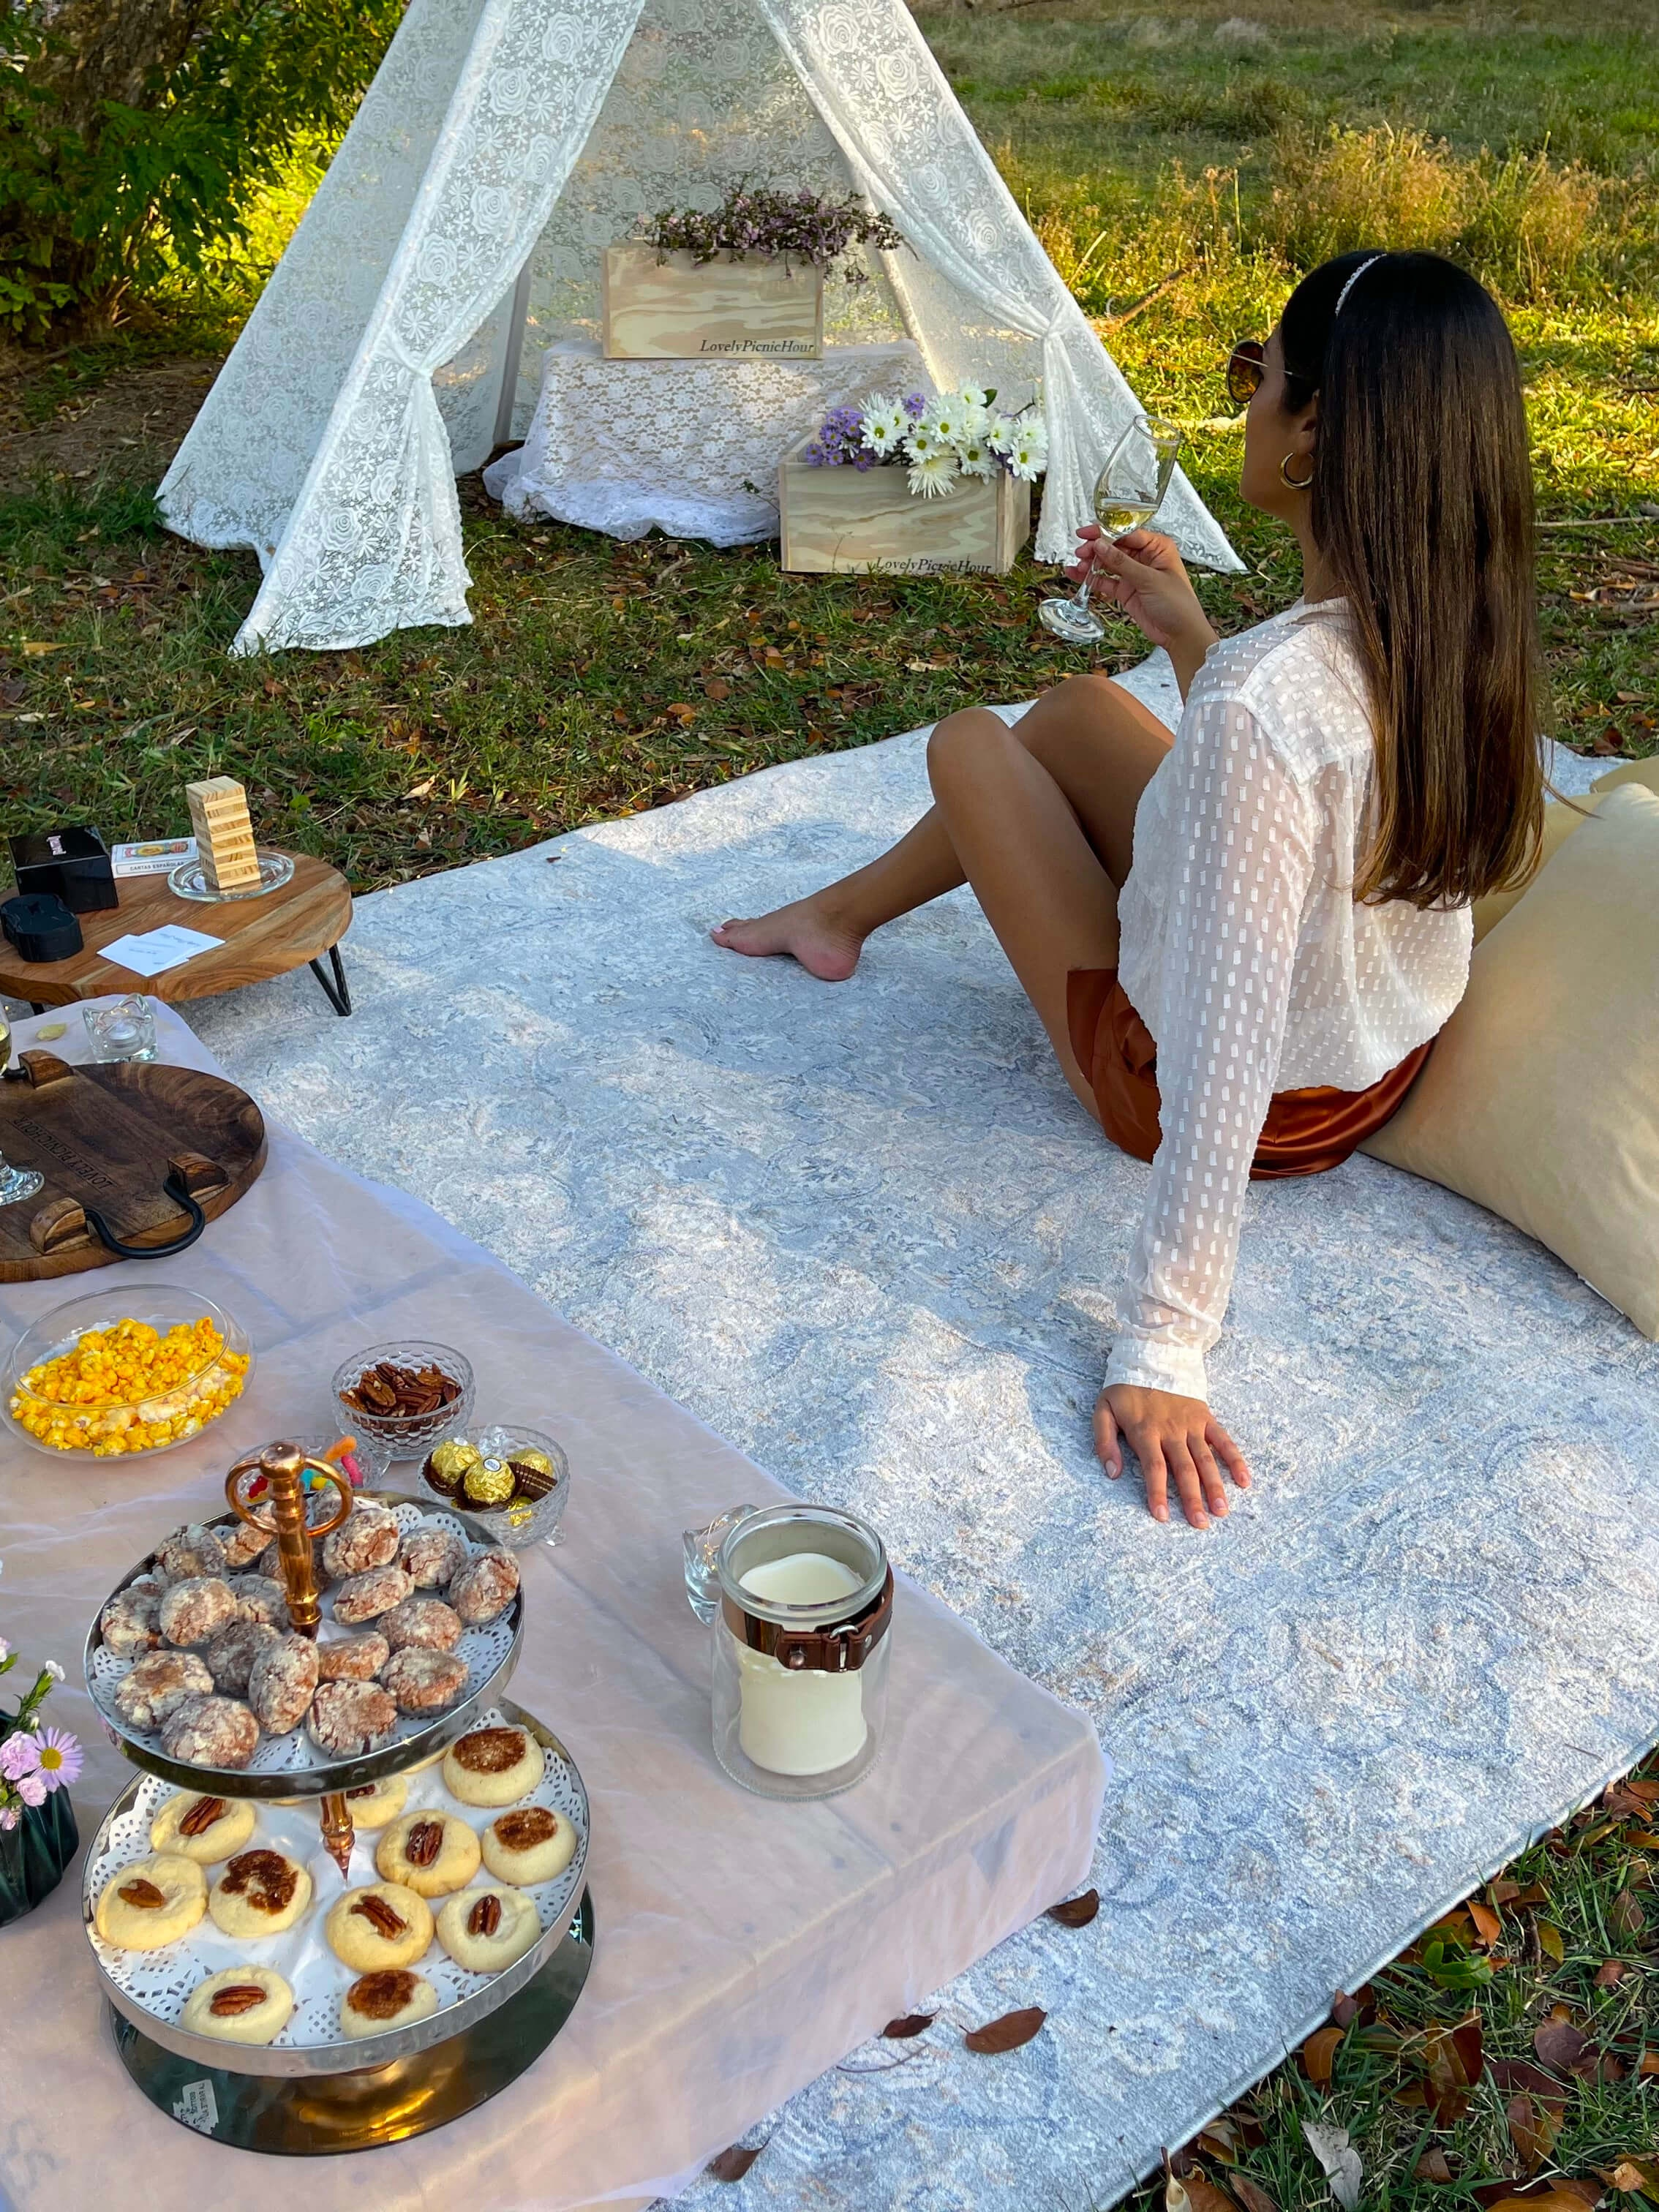 Picnic in San Juan, Puerto Rico, with charcuterie and fresh flowers. Designed by Lovely Picnic Hour.